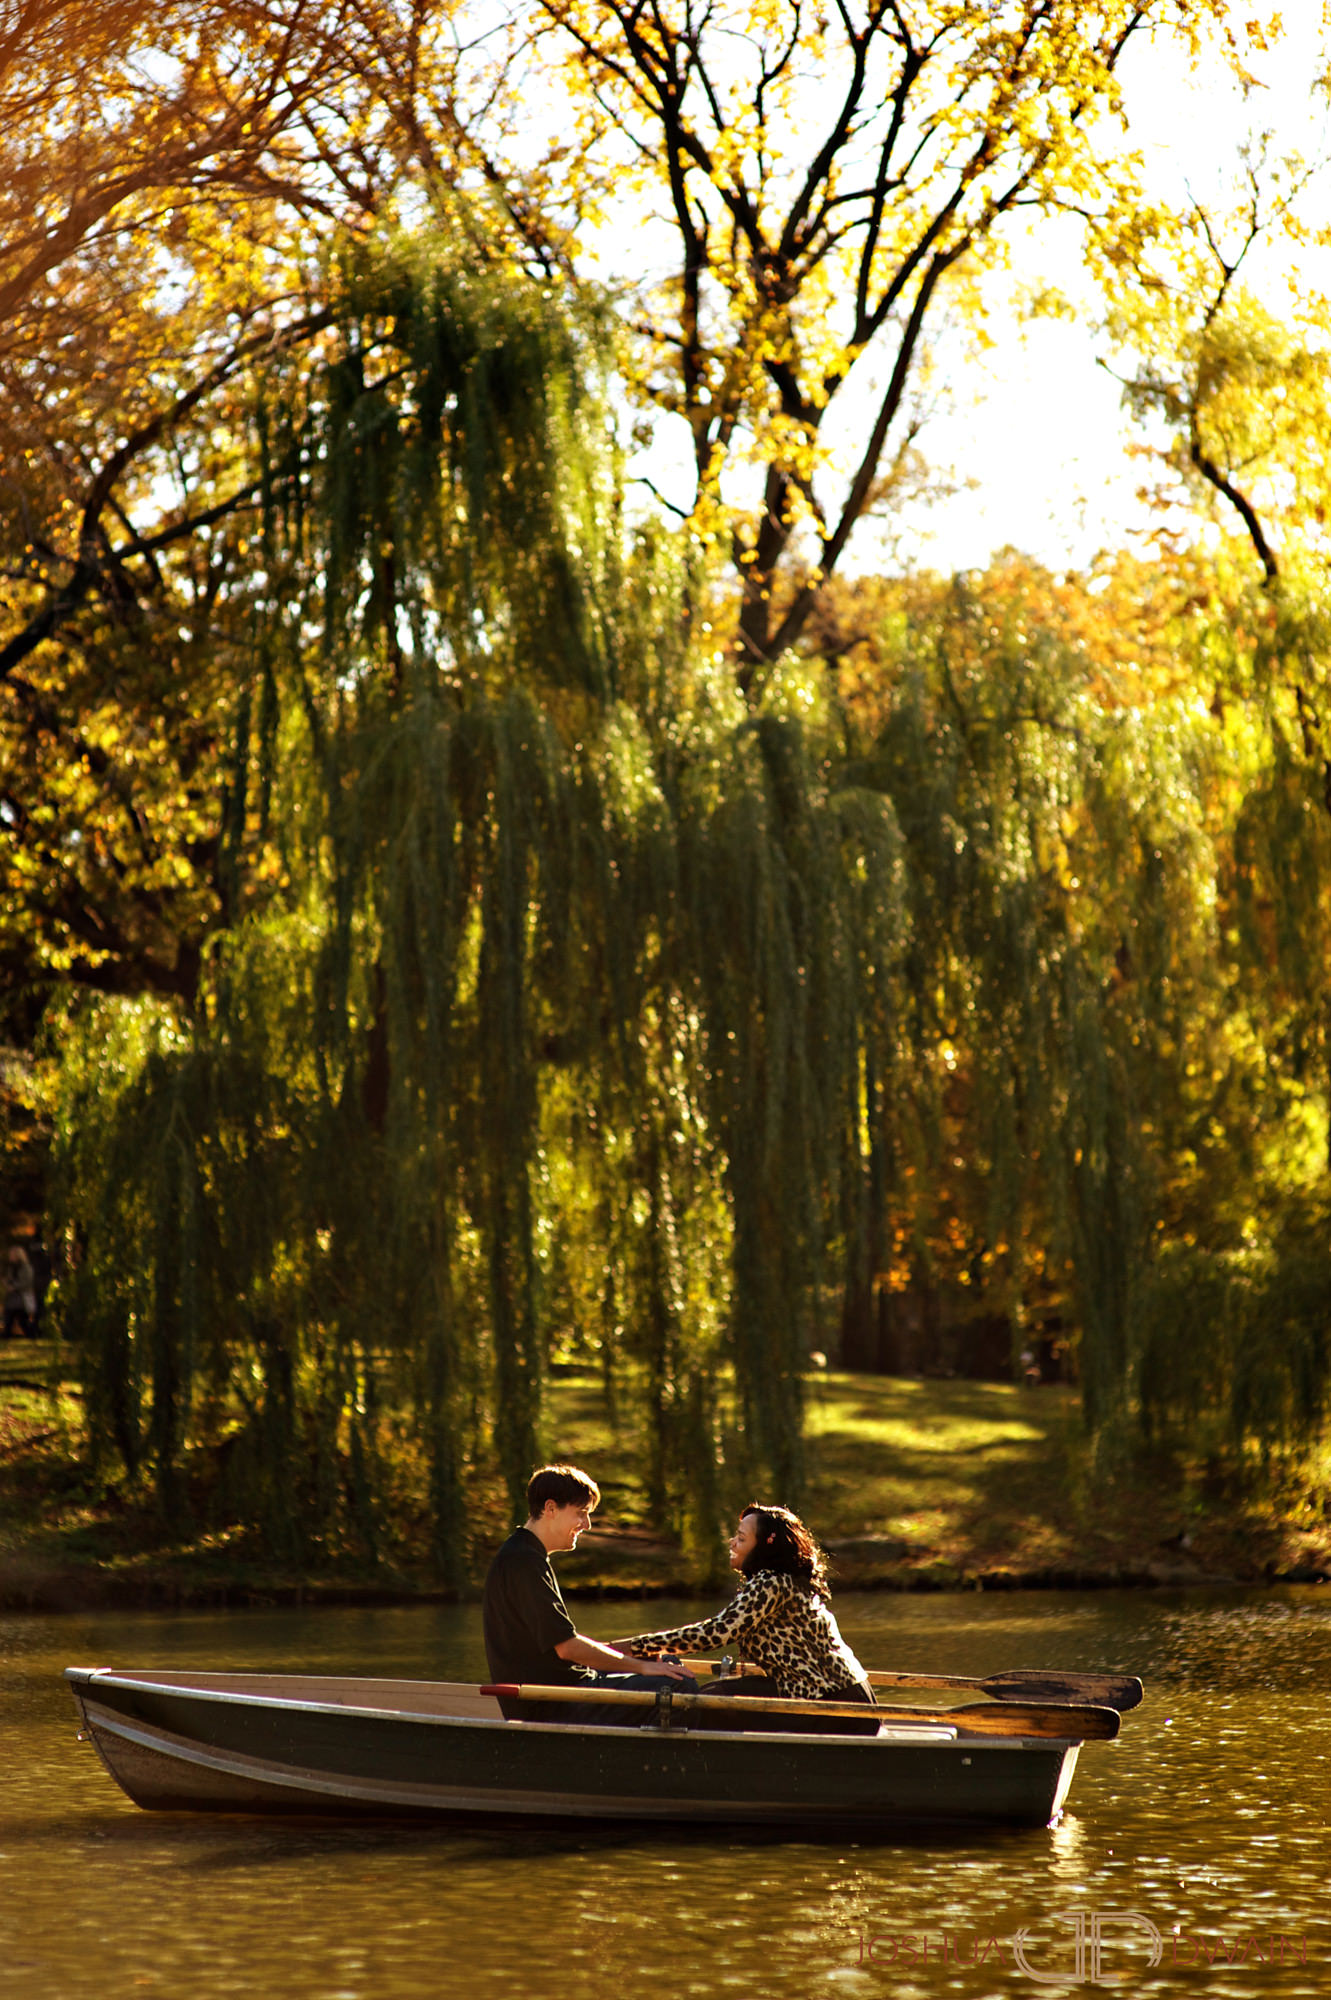 fritzie-stephen-002-central-park-new-york-city-ny-engagement-photographer-joshua-dwain-2011-11-05_fs_005